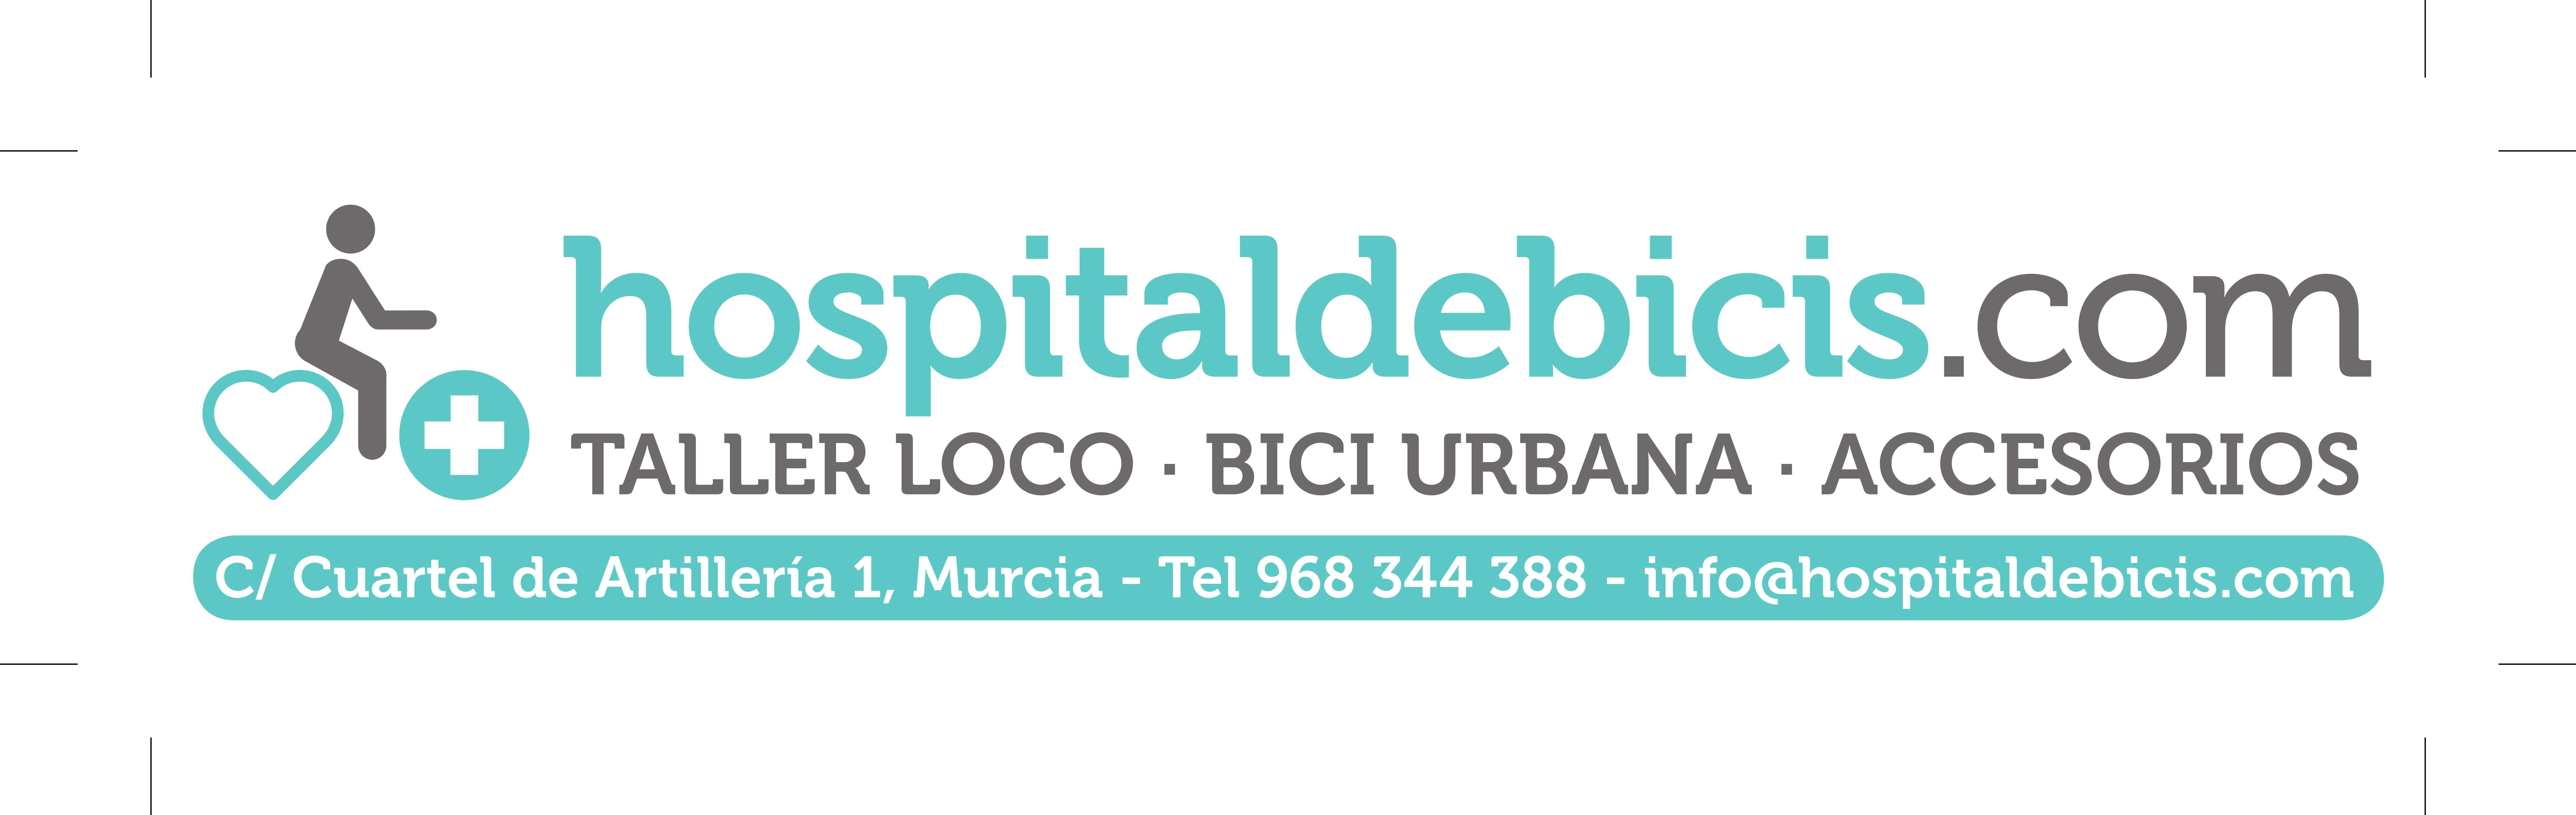 Logotipo hospital de bicis